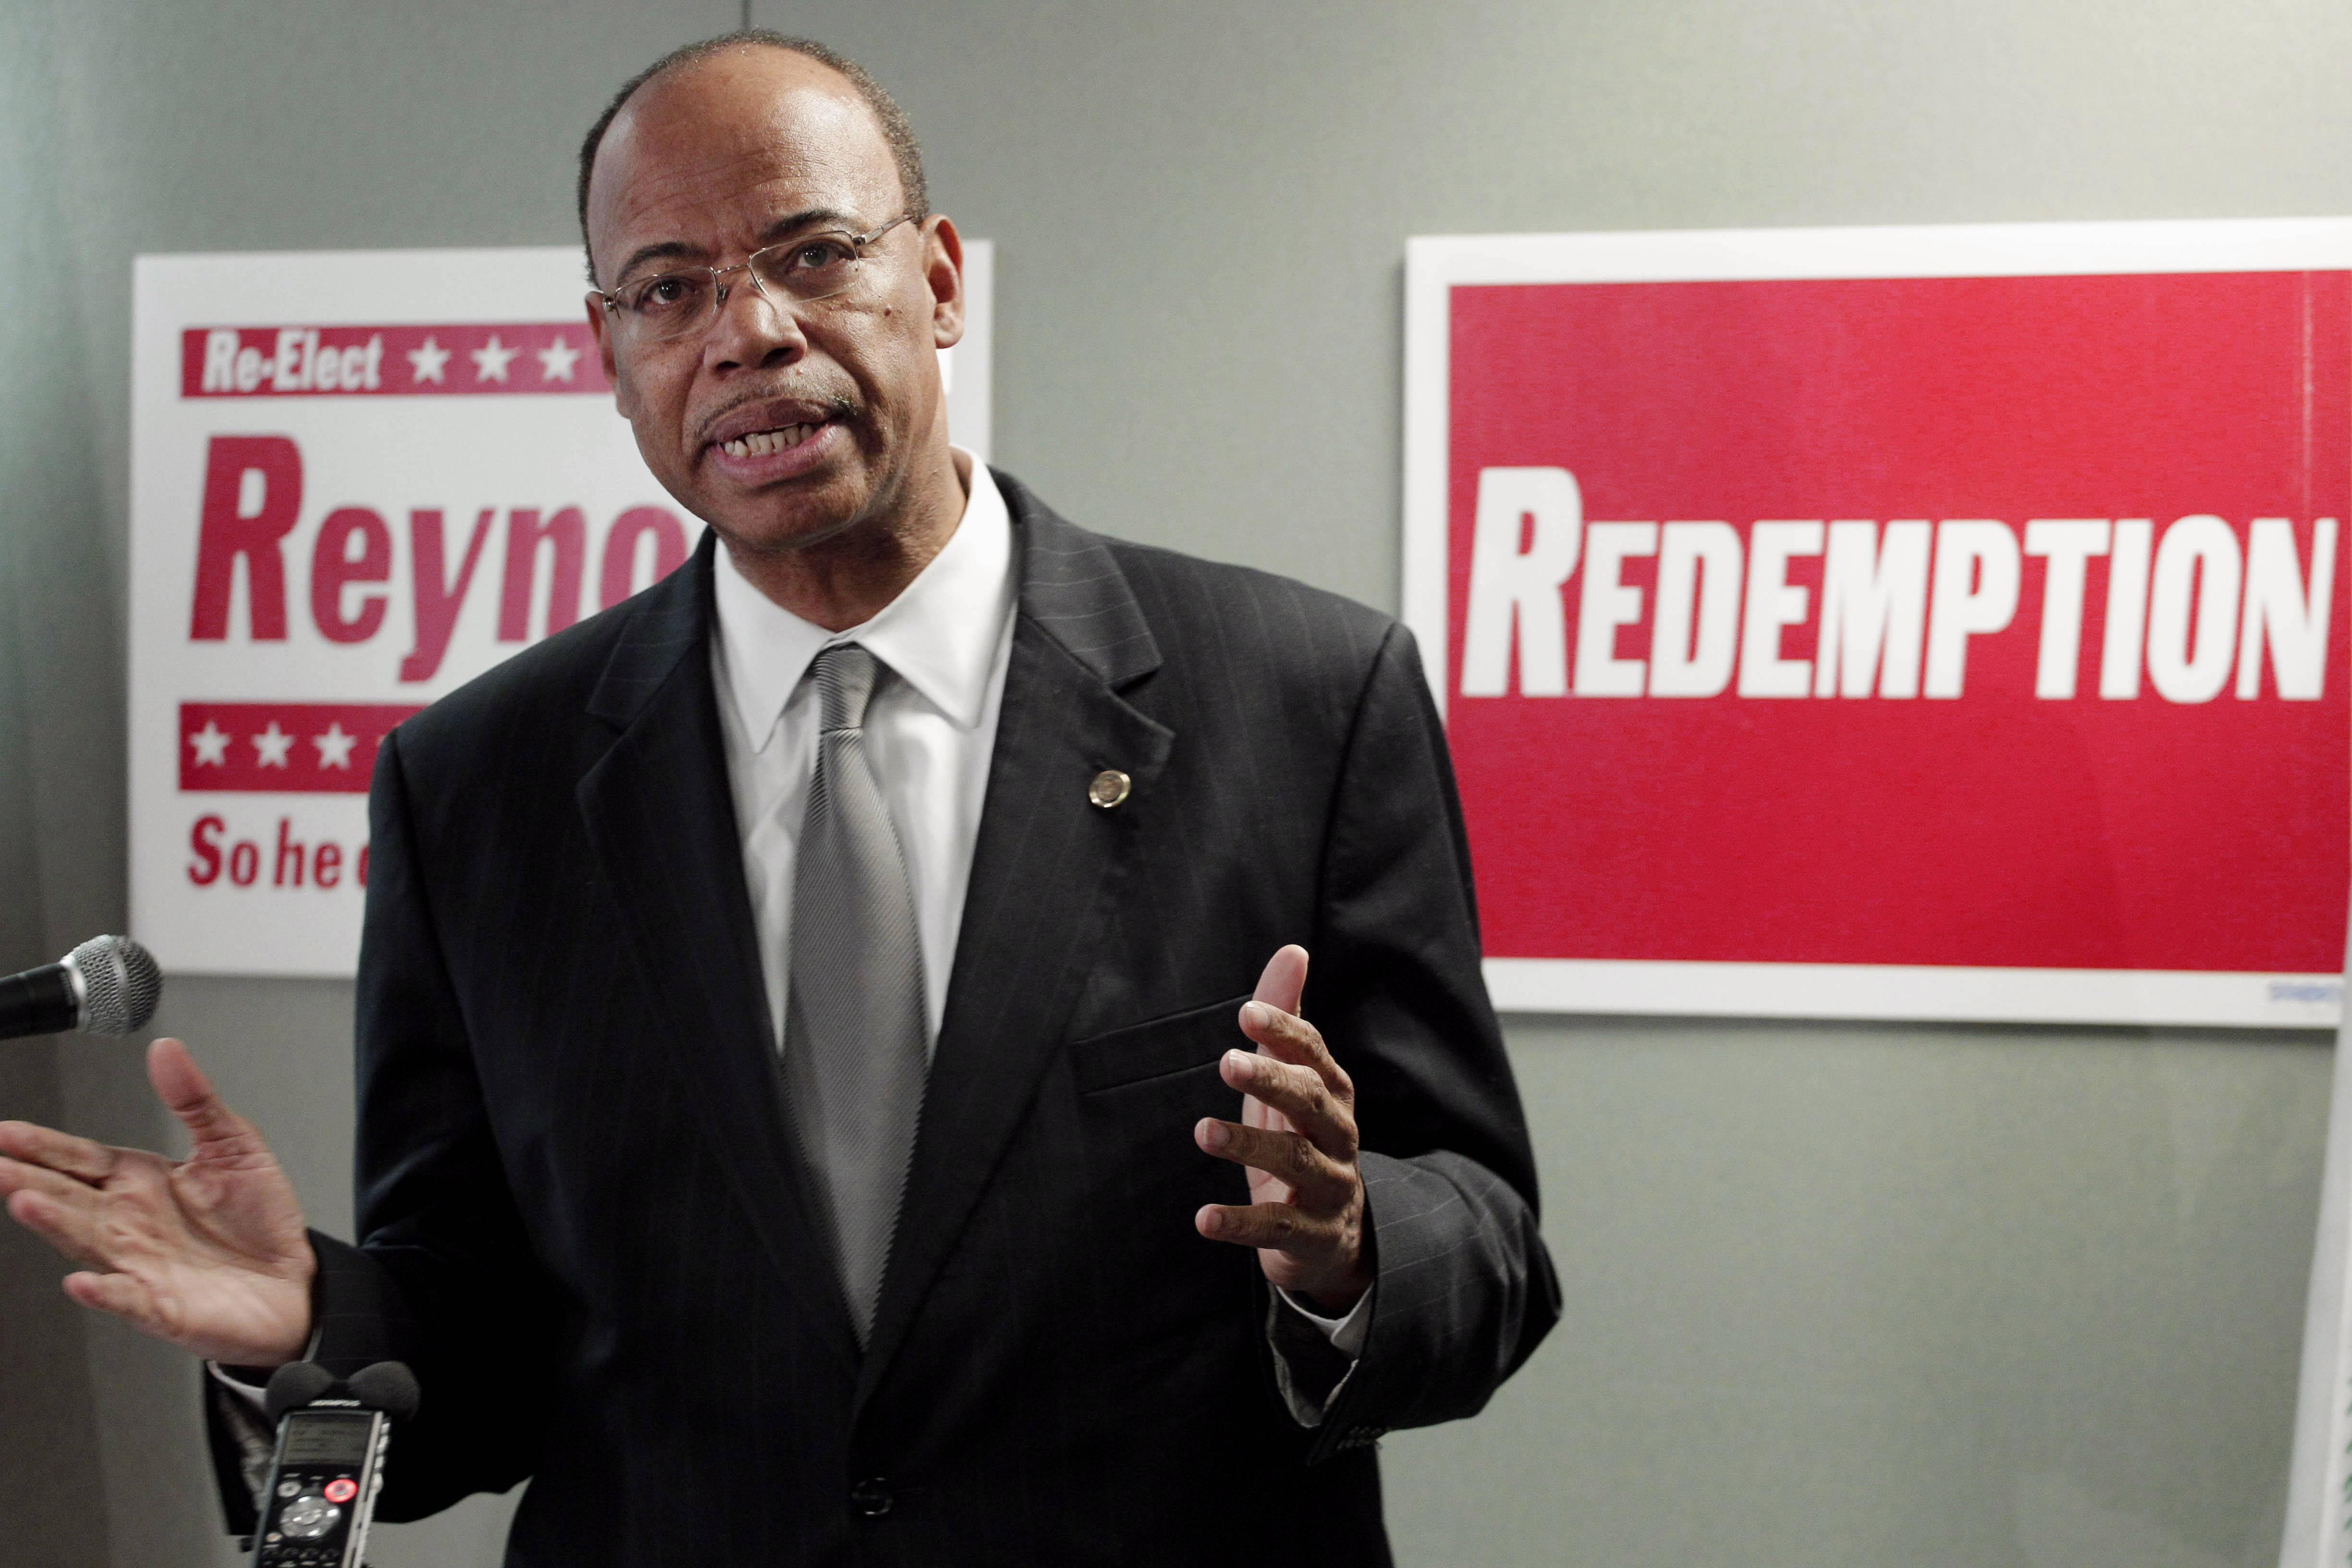 A Zimbabwean immigration official said Tuesday that former U.S. Rep. Mel Reynolds had been arrested Monday for possessing pornographic material and violating immigration laws.